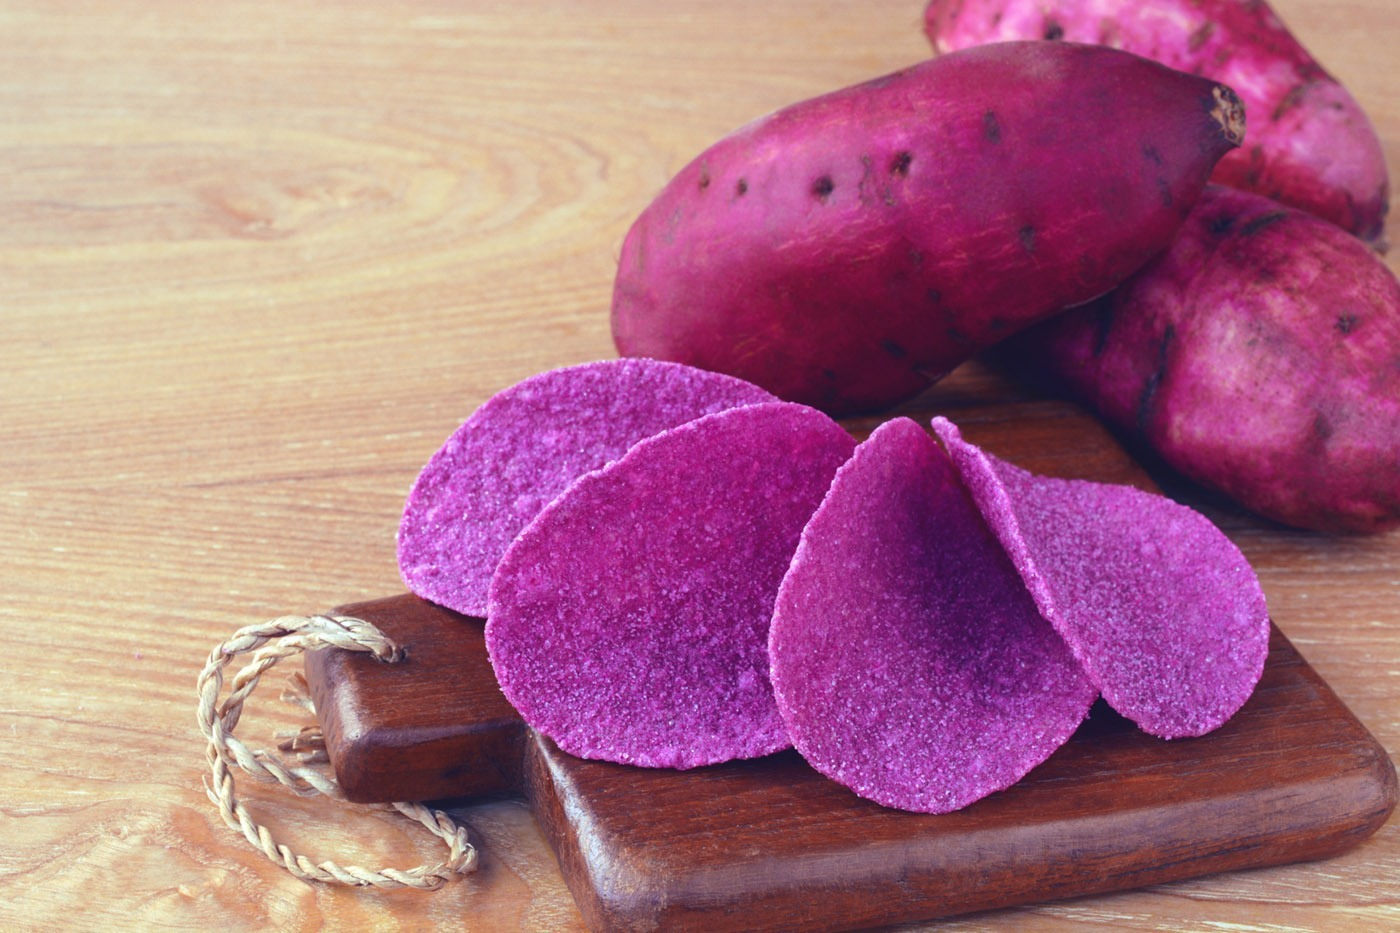 Shades of Purple: How a Colorful Trend is Changing the Appearance of Food